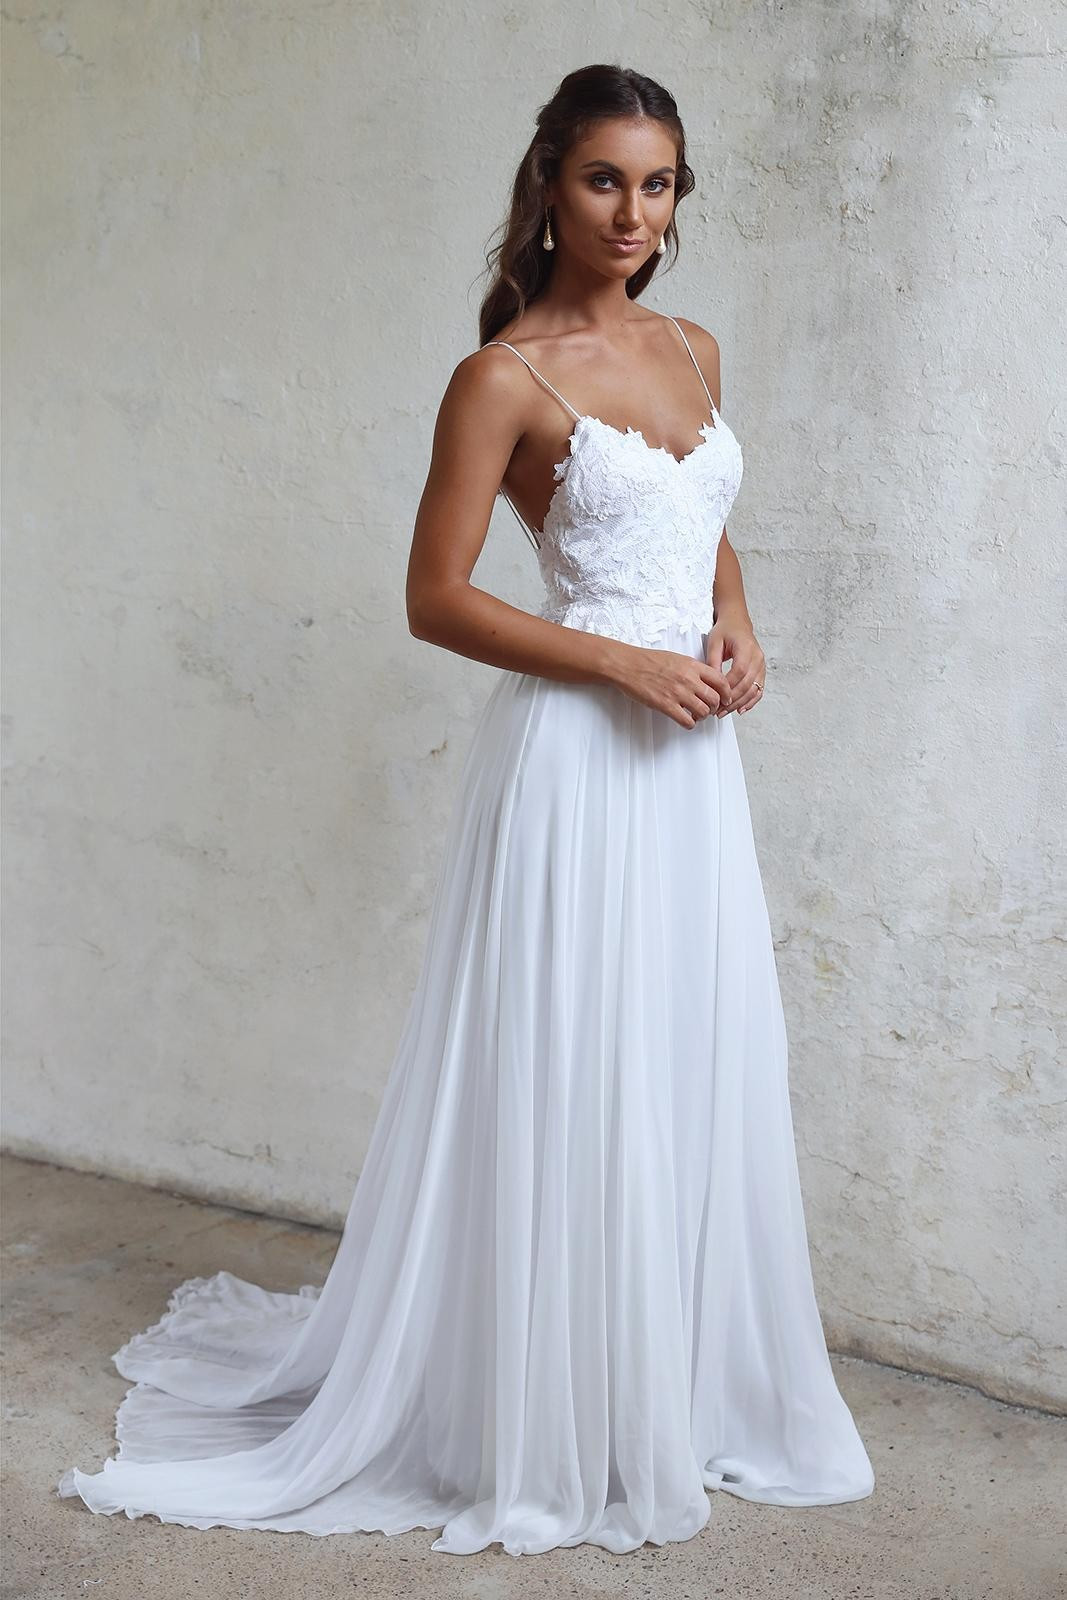 Spaghetti Strap Wedding Gown  Simple A line Spaghetti Straps Open Back Summer Wedding Dress